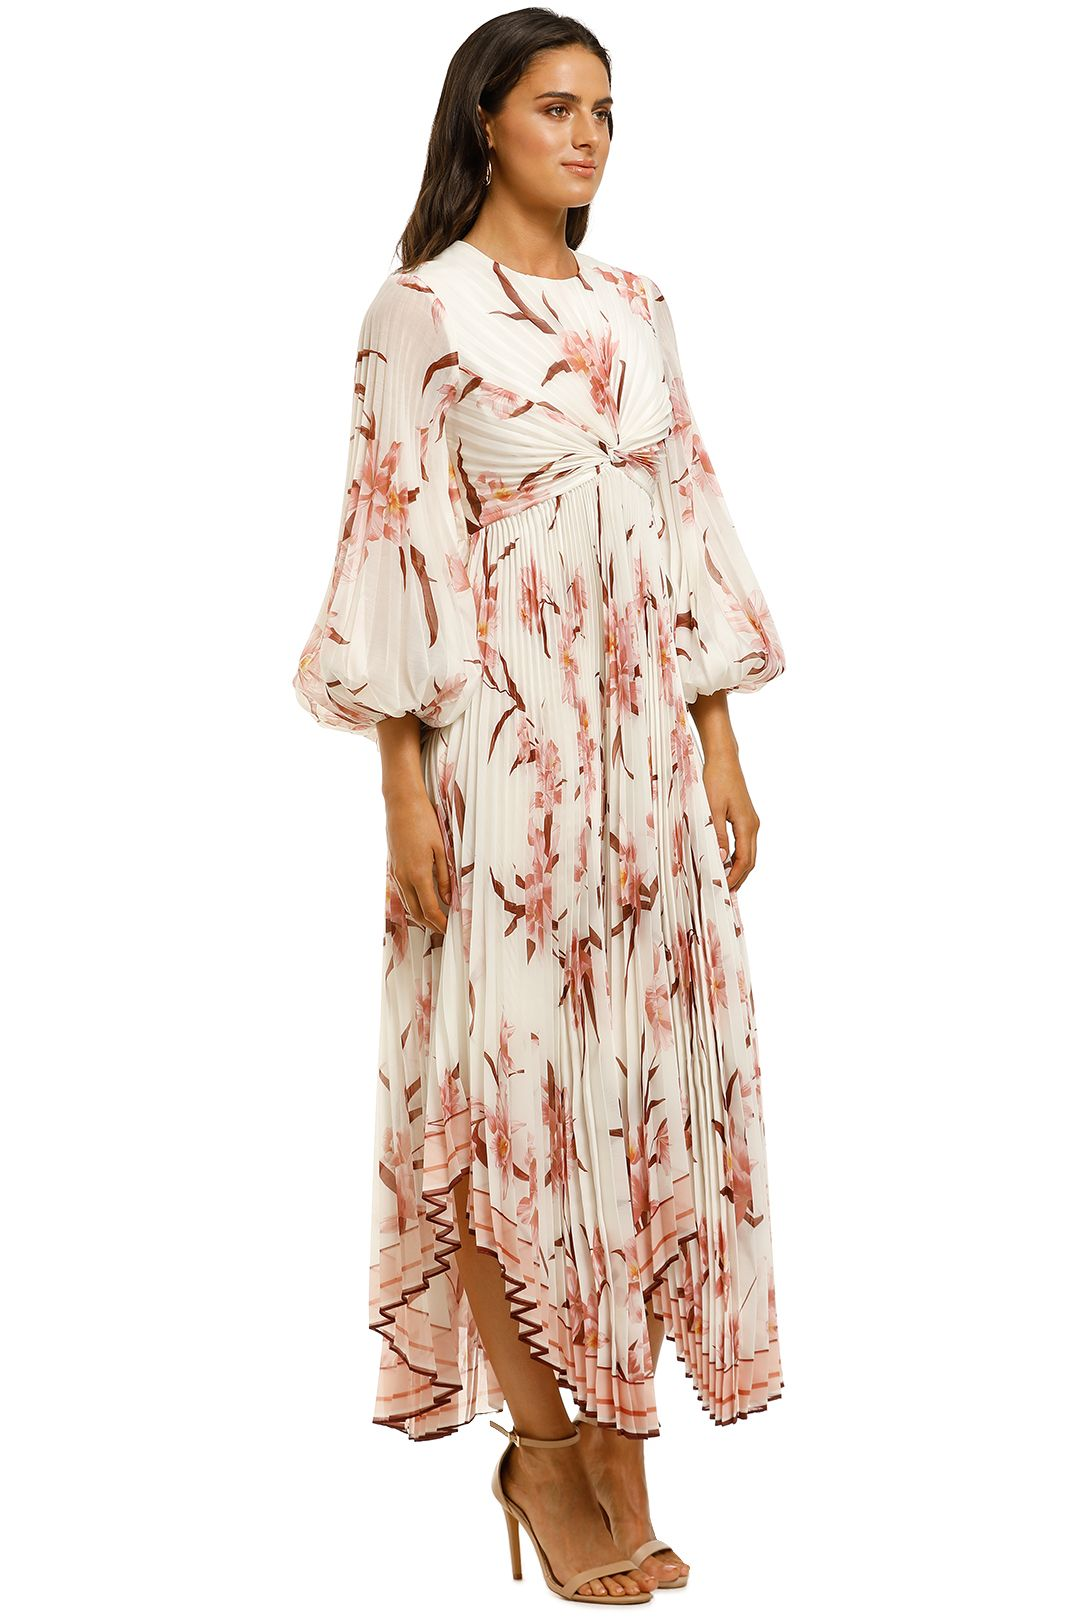 Zimmermann-Corsage-Pleated-Dress-Ivory-Peach-Orchid-Side